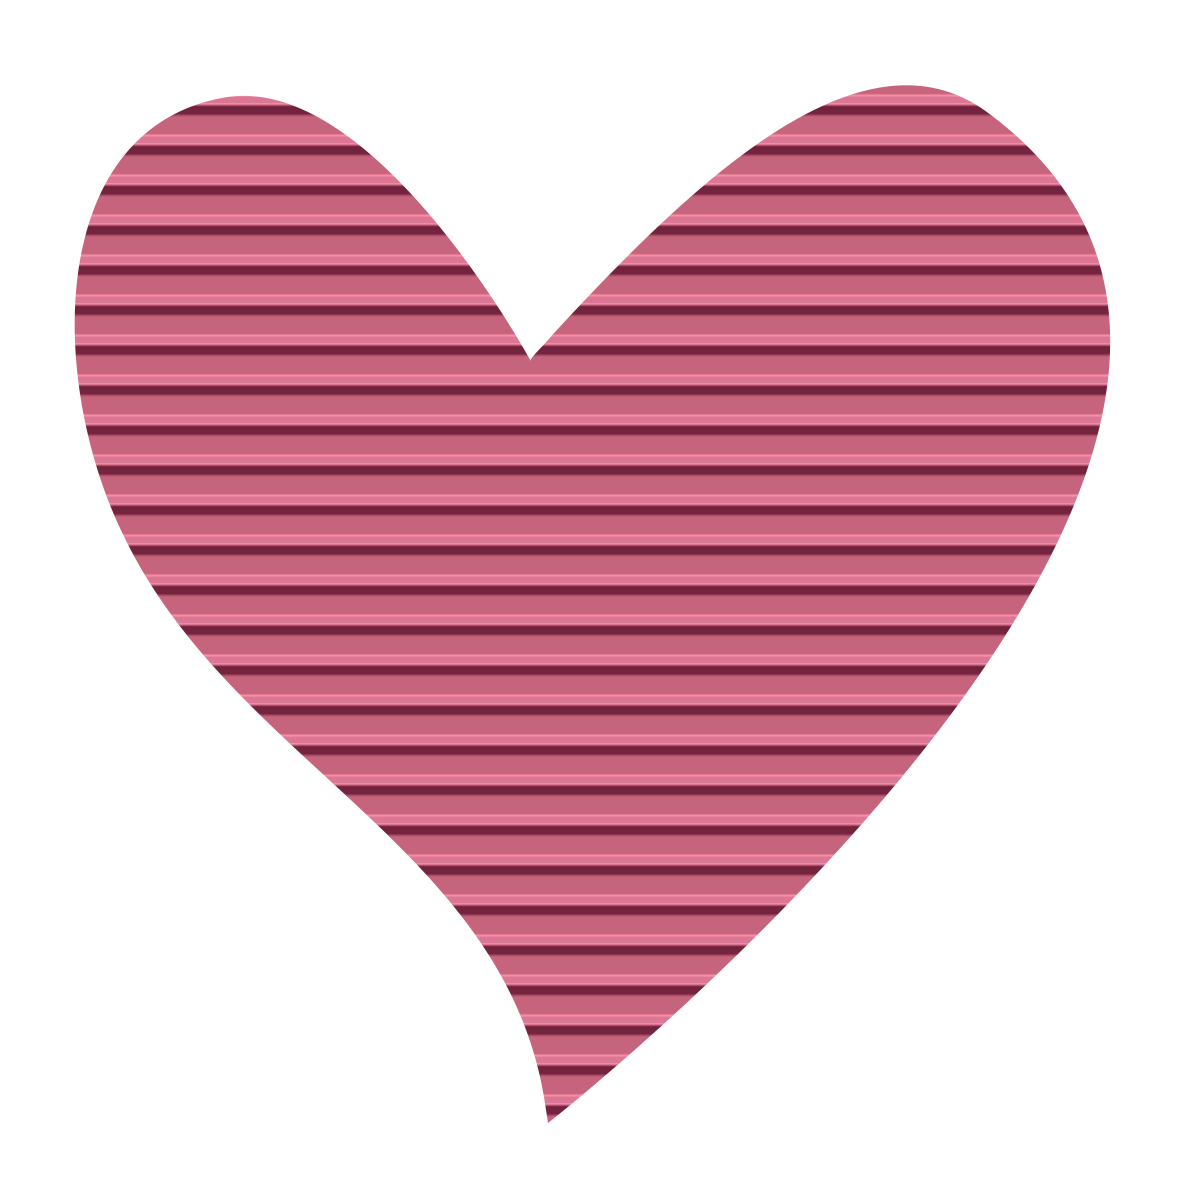 Heart-shaped clipart Shaped Heart Clipart Clipart Clipart